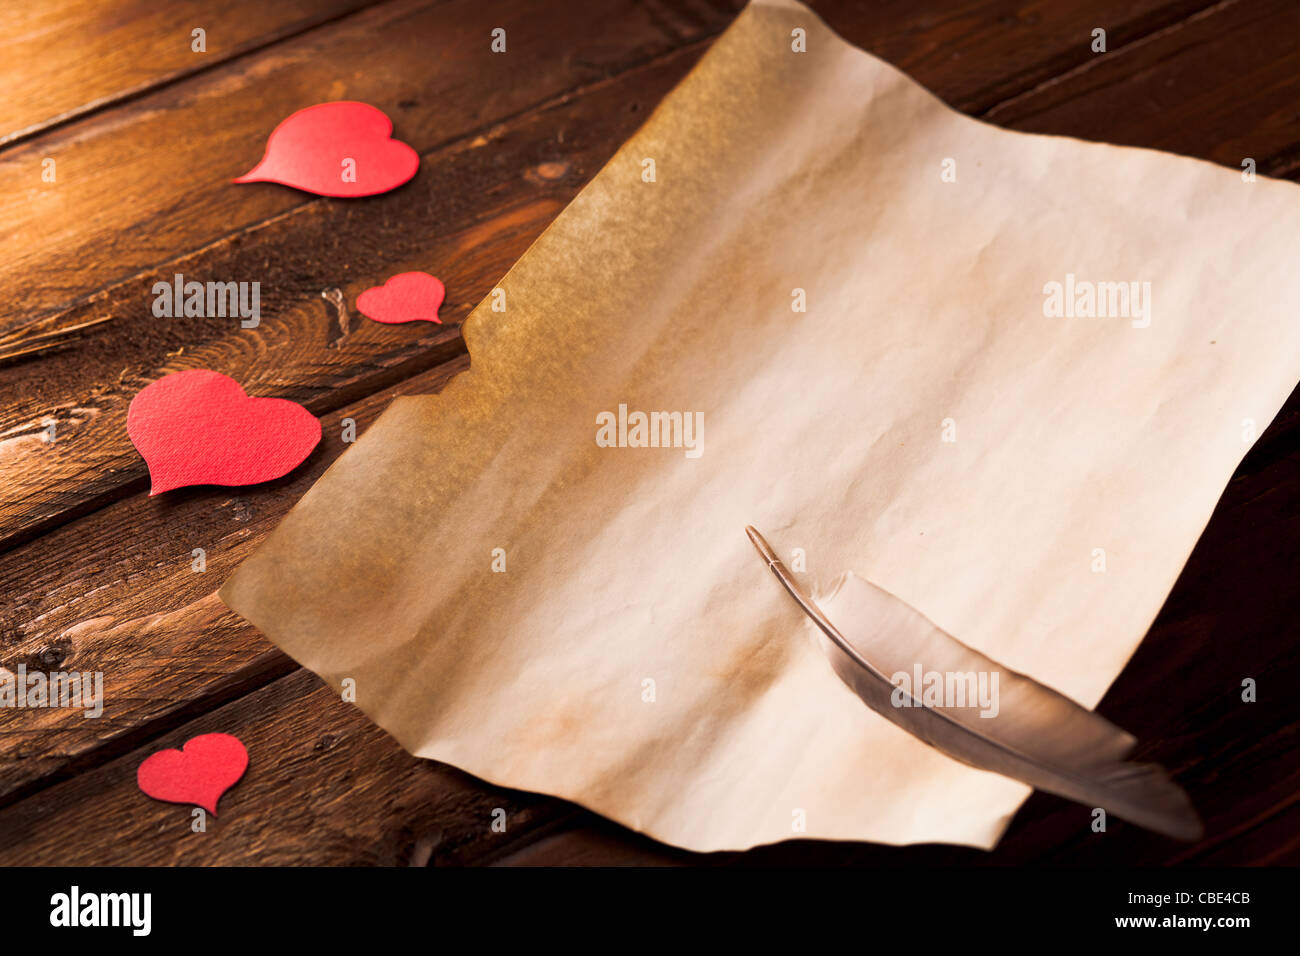 Blank Love Letter on Wood with Hearts and Feather - Stock Image